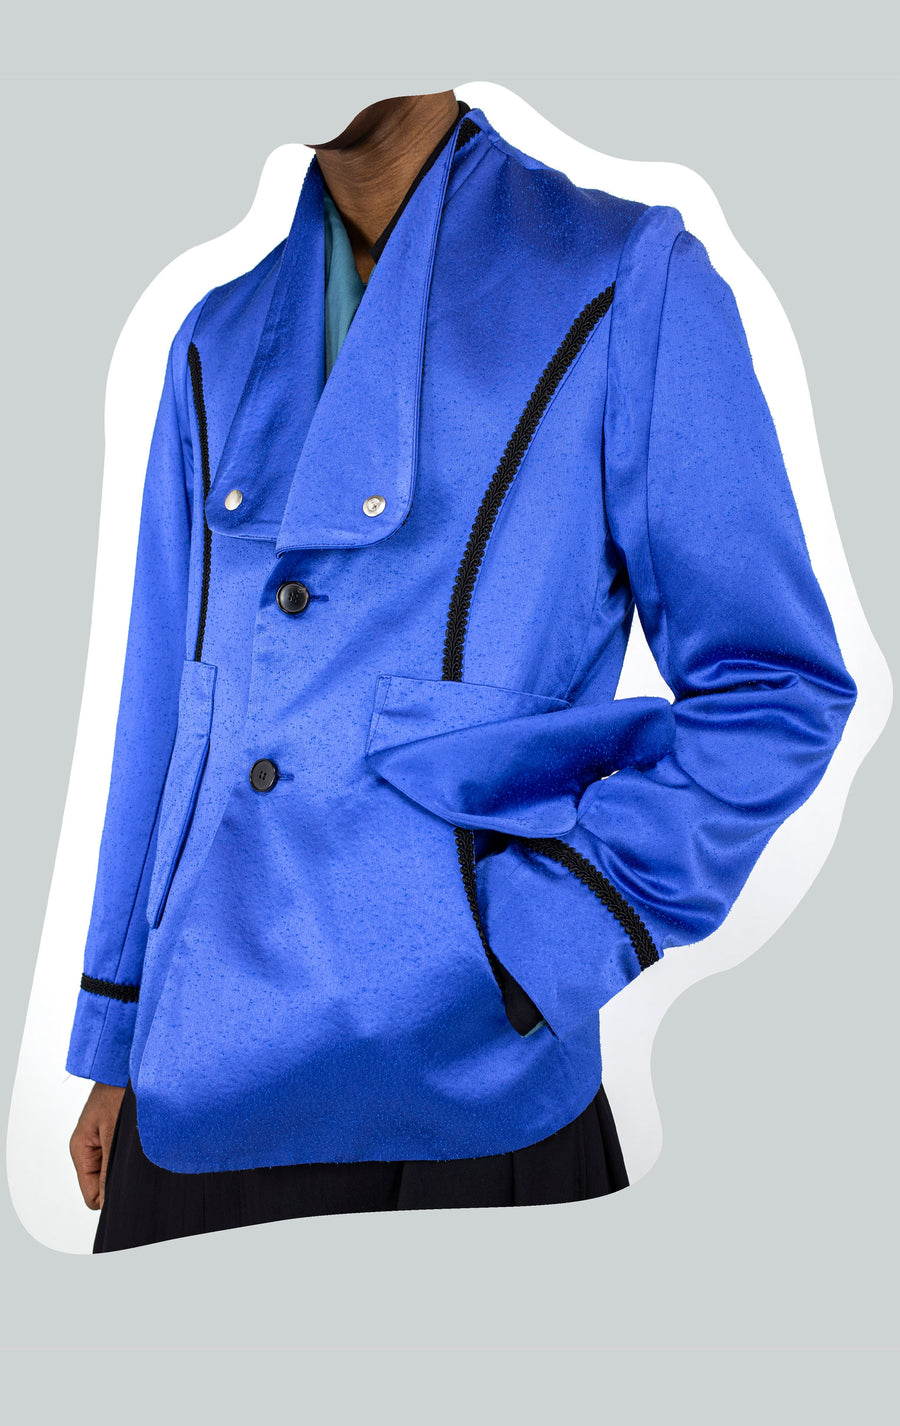 00102021 ARCADIA TAILORED BLAZER BLUE